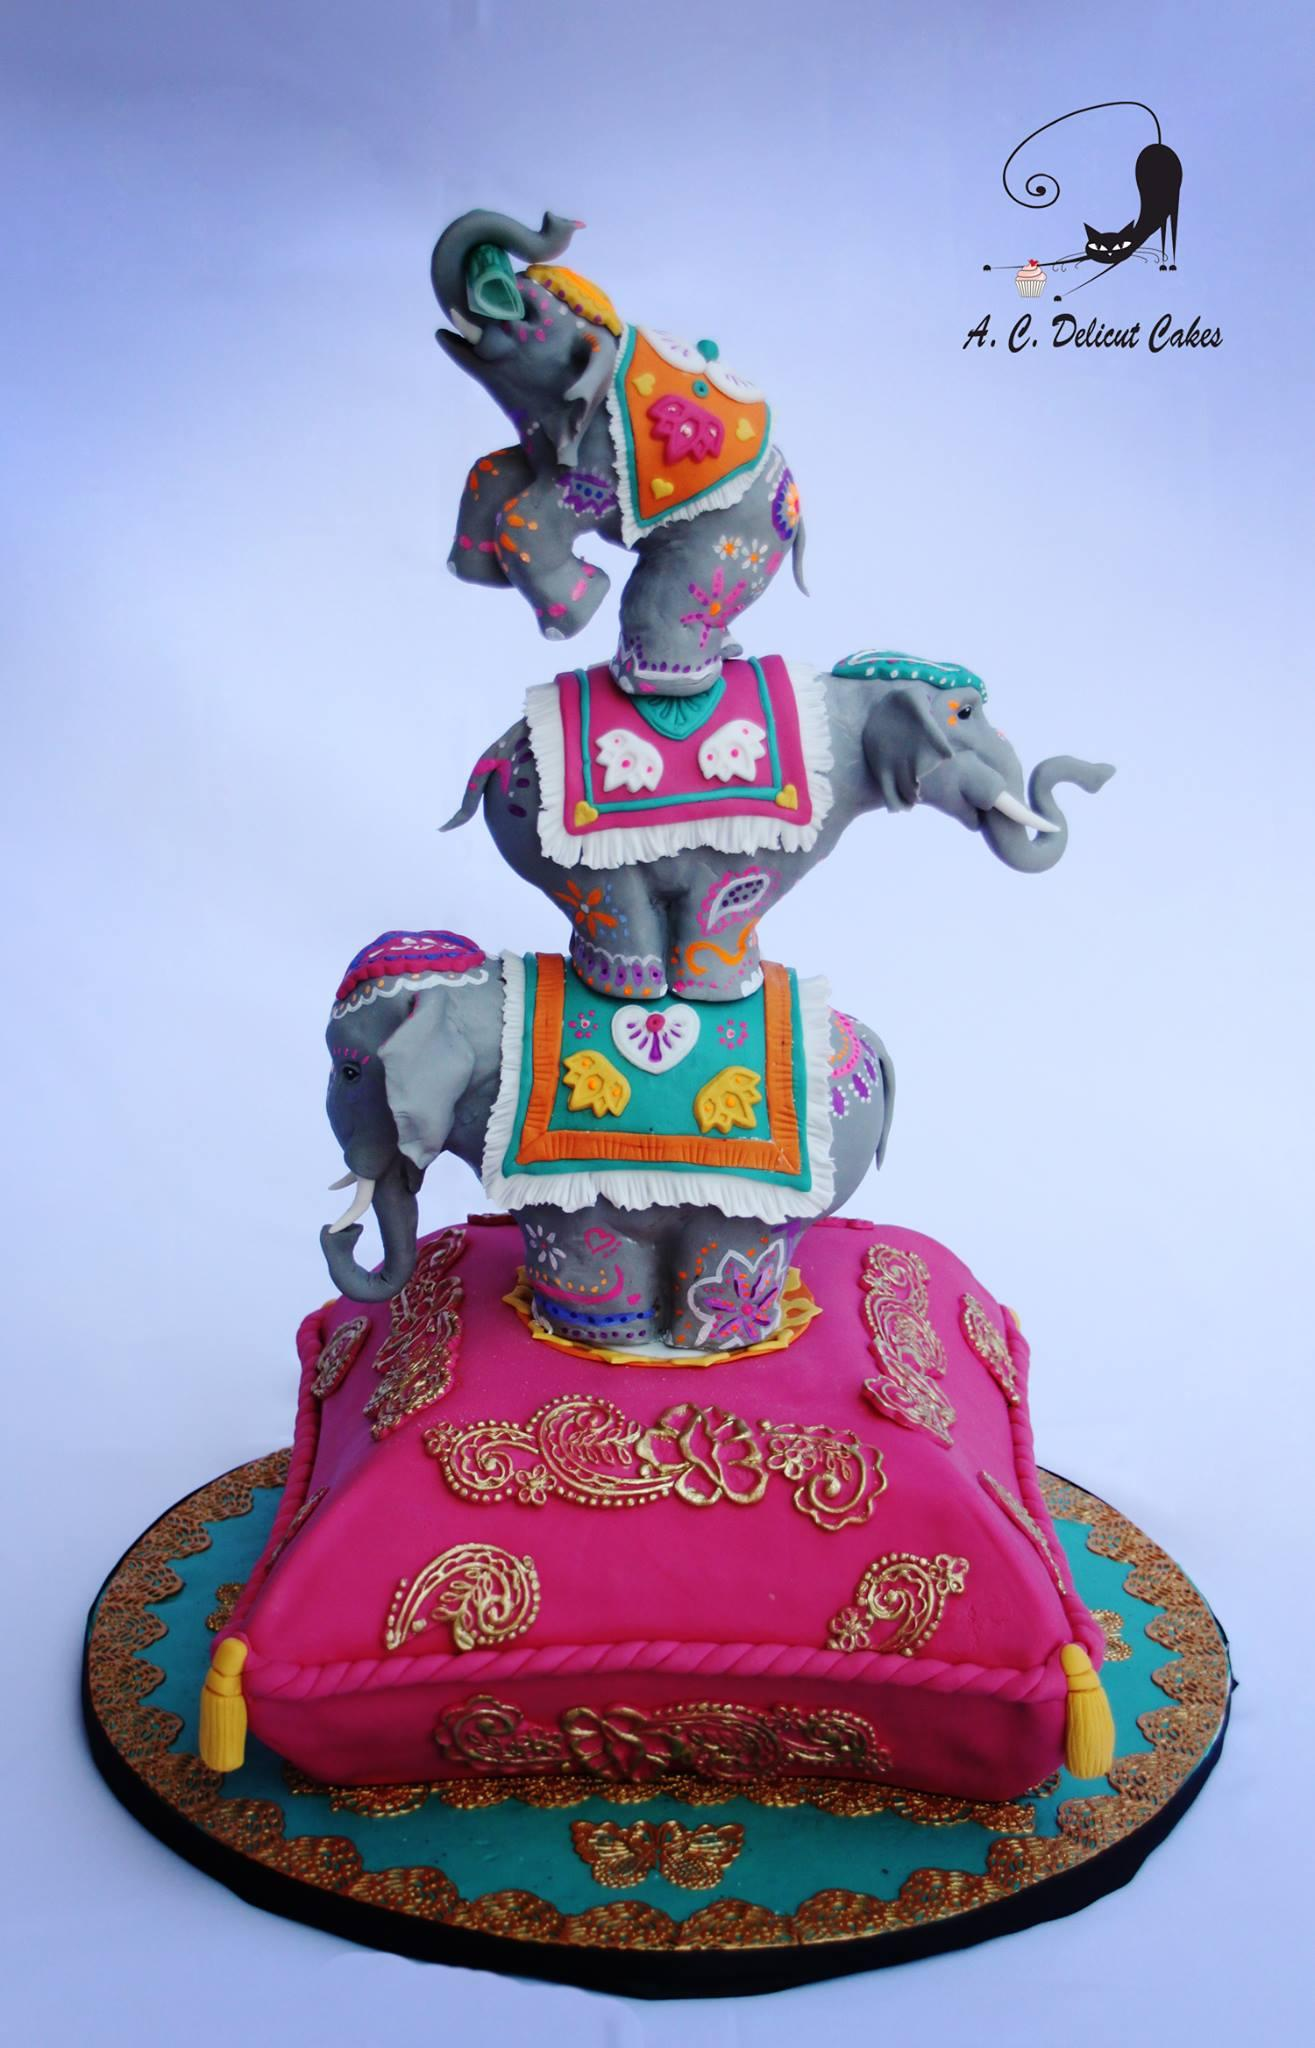 Topsy turvy elephant cake with bright colors